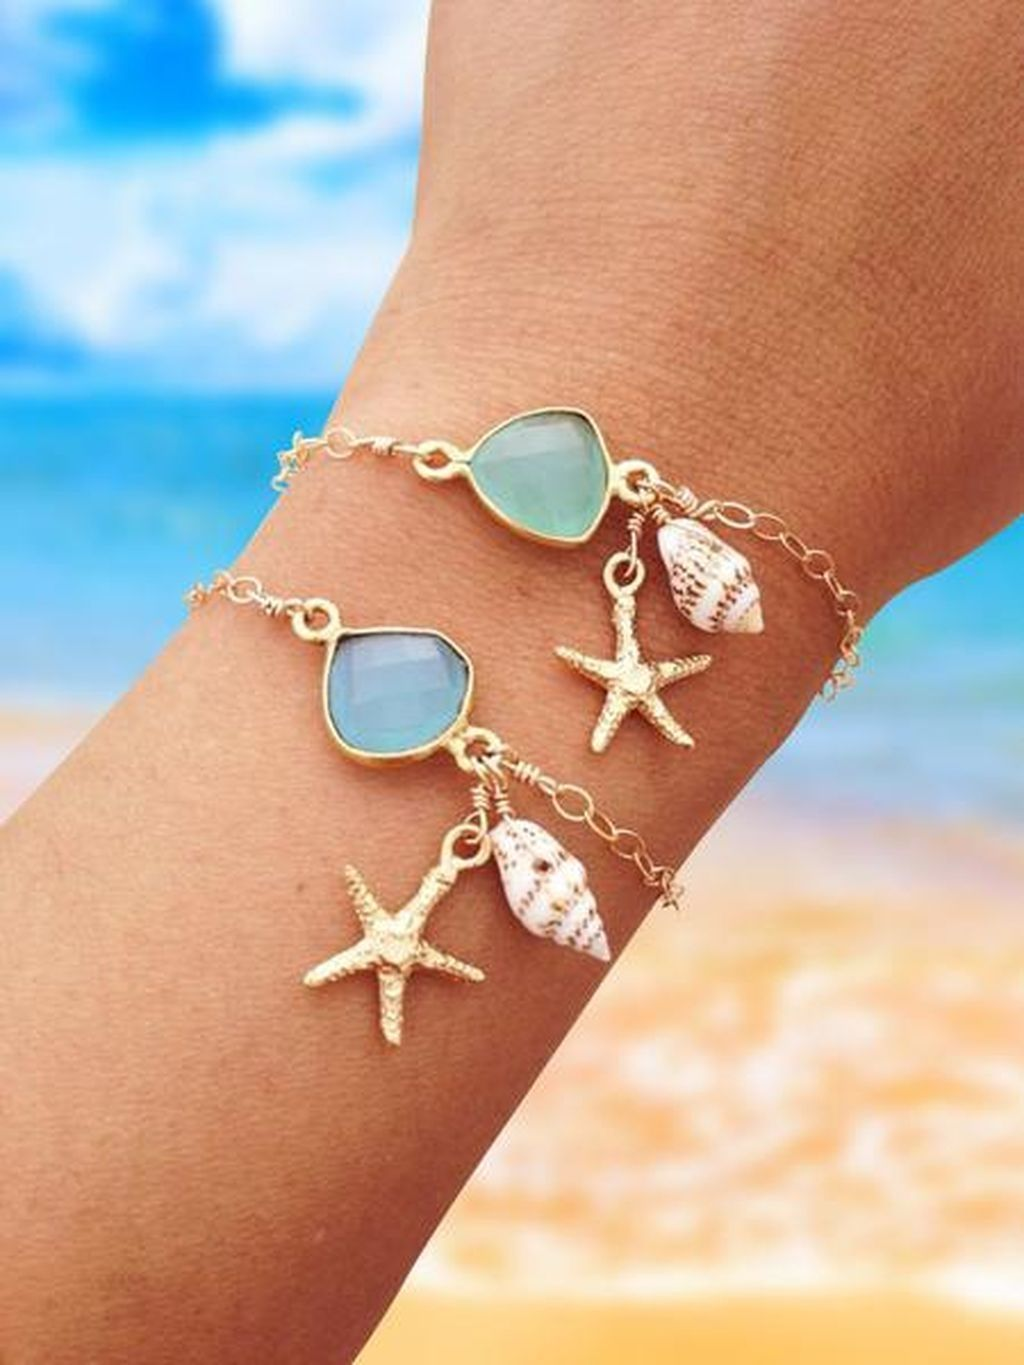 sandal from in foot bracelet anklet com ankle women barefoot accessories constellation fashion on beach men chain aliexpress jewelry anklets item